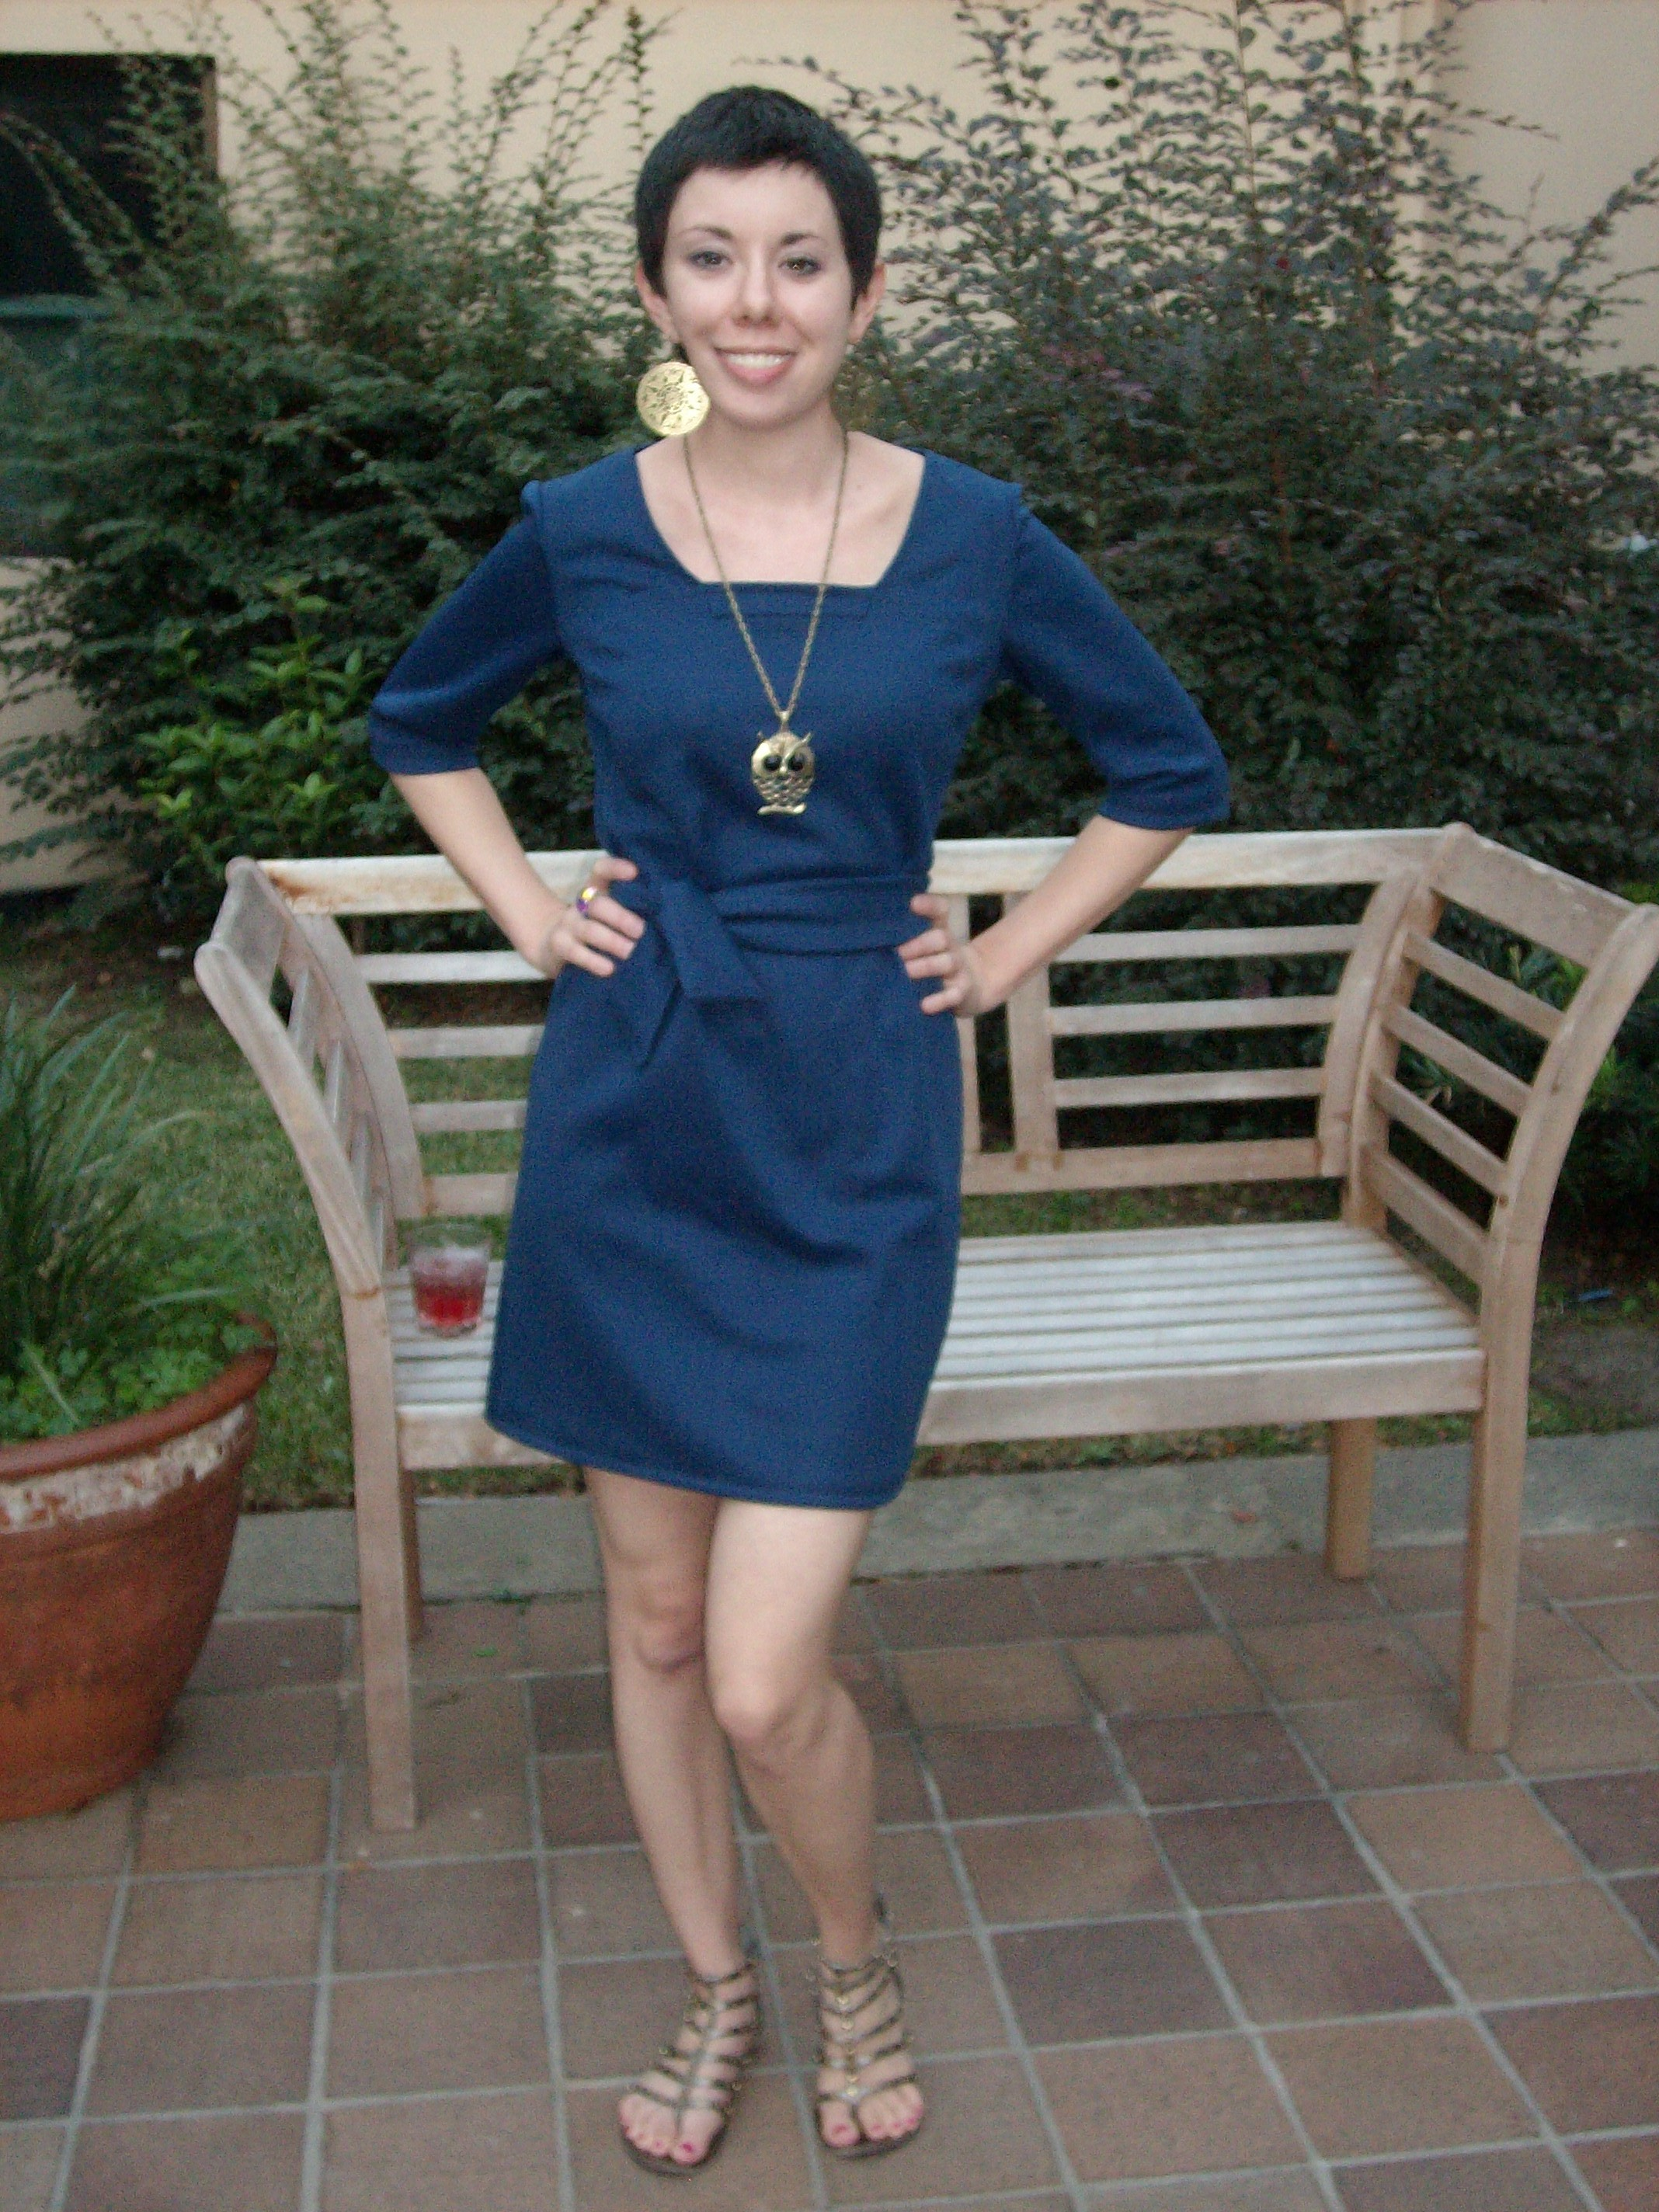 She Wore Blue Polyester... 12